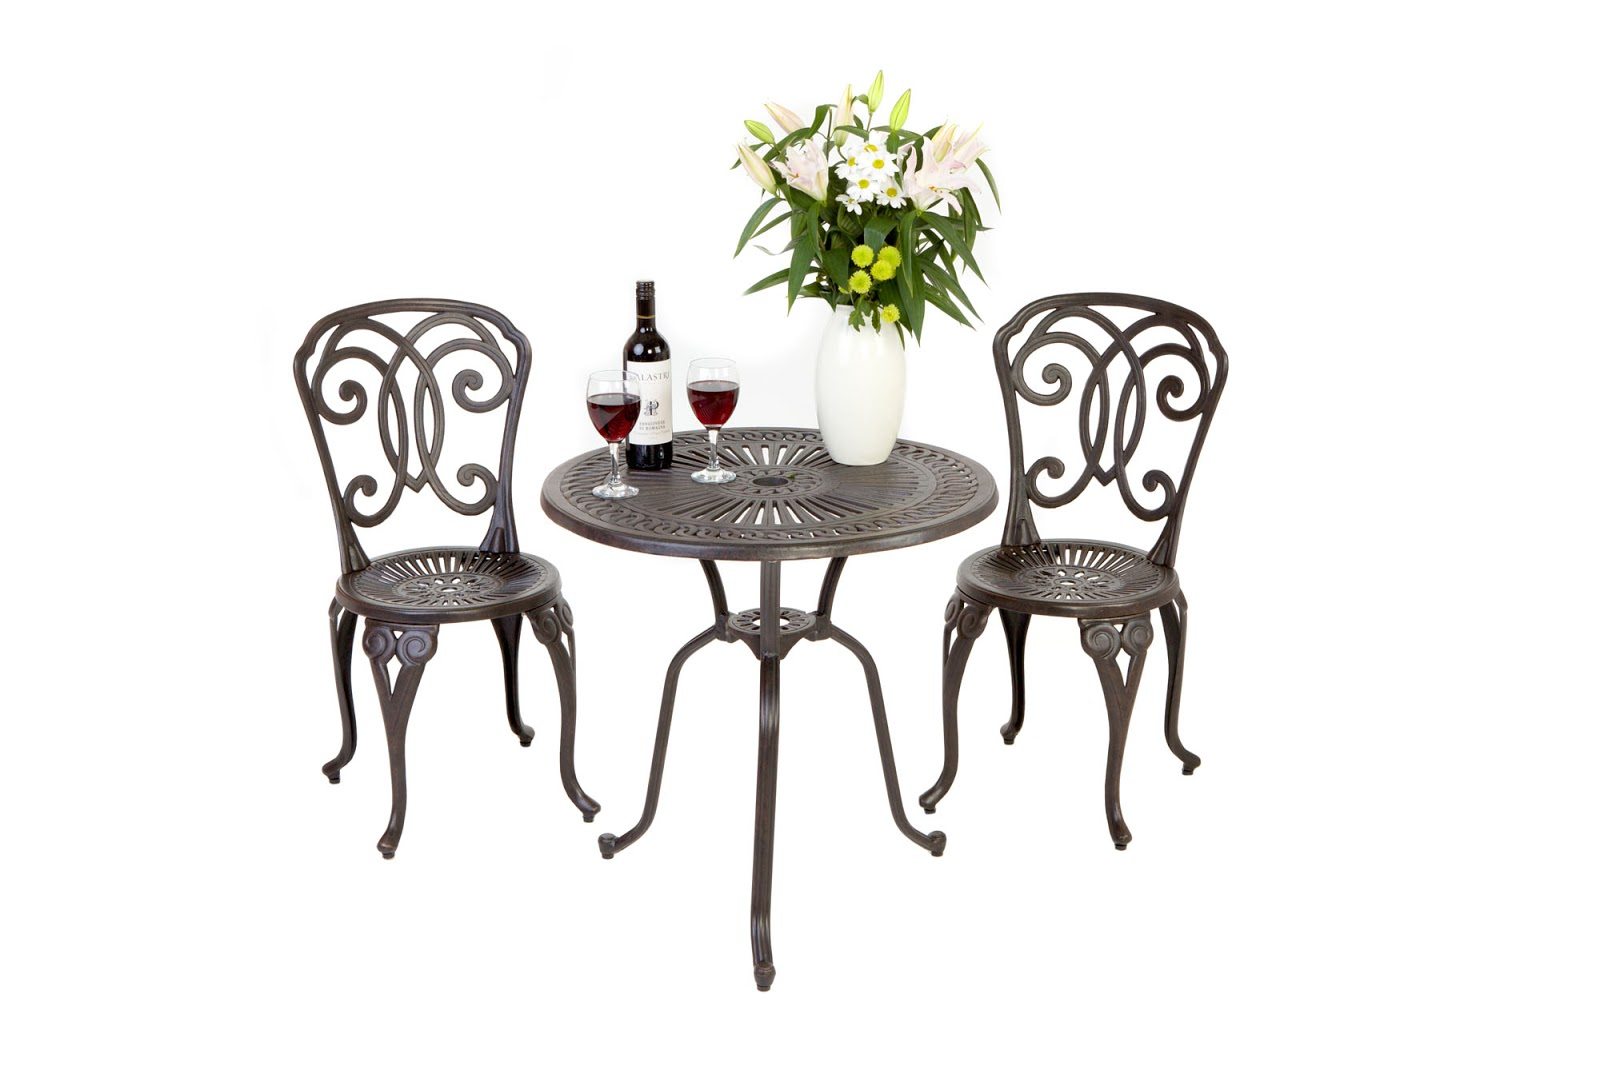 french bistro table and chairs uk patio with umbrella outdoor sets design ideas outside edge garden furniture blog free cast aluminium